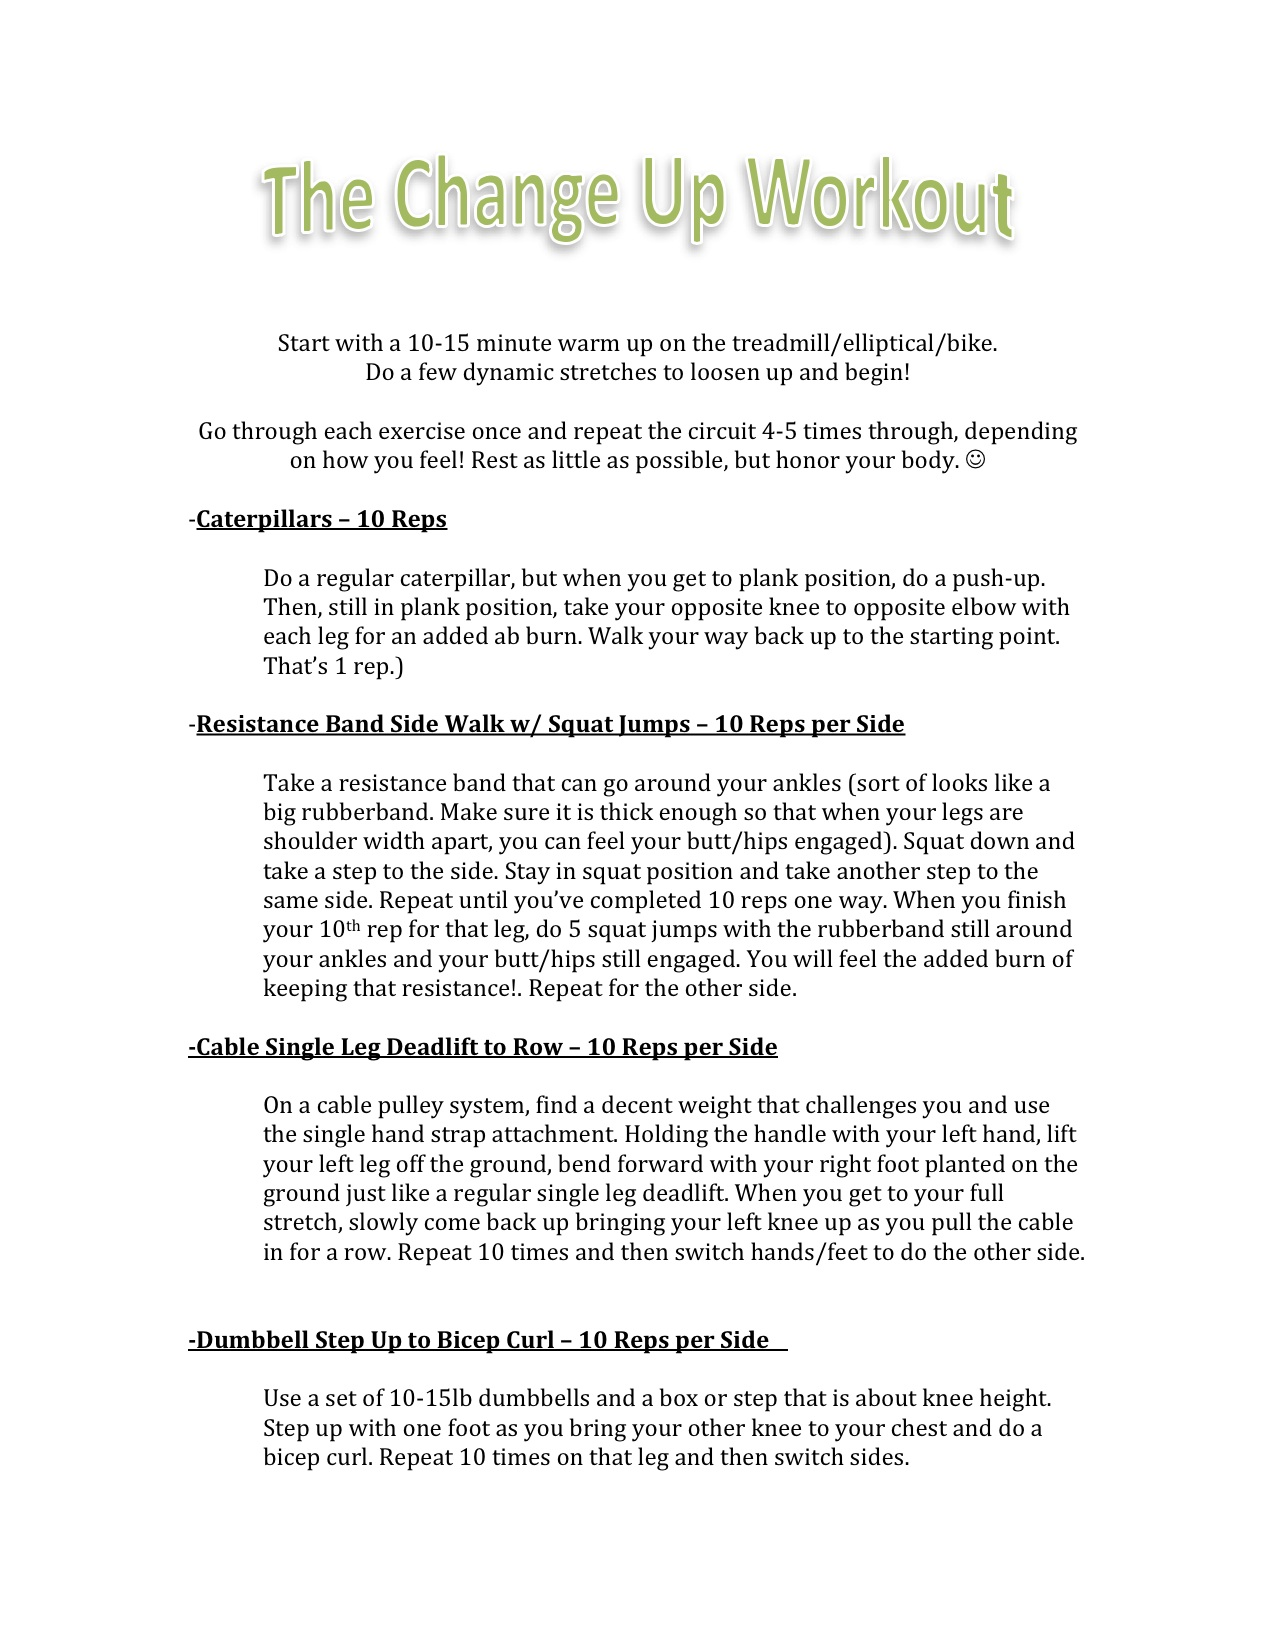 Leg Workout Fit Lizzio Fitness Blog Legs Killer Circuit Totally Dead Superset Change Up